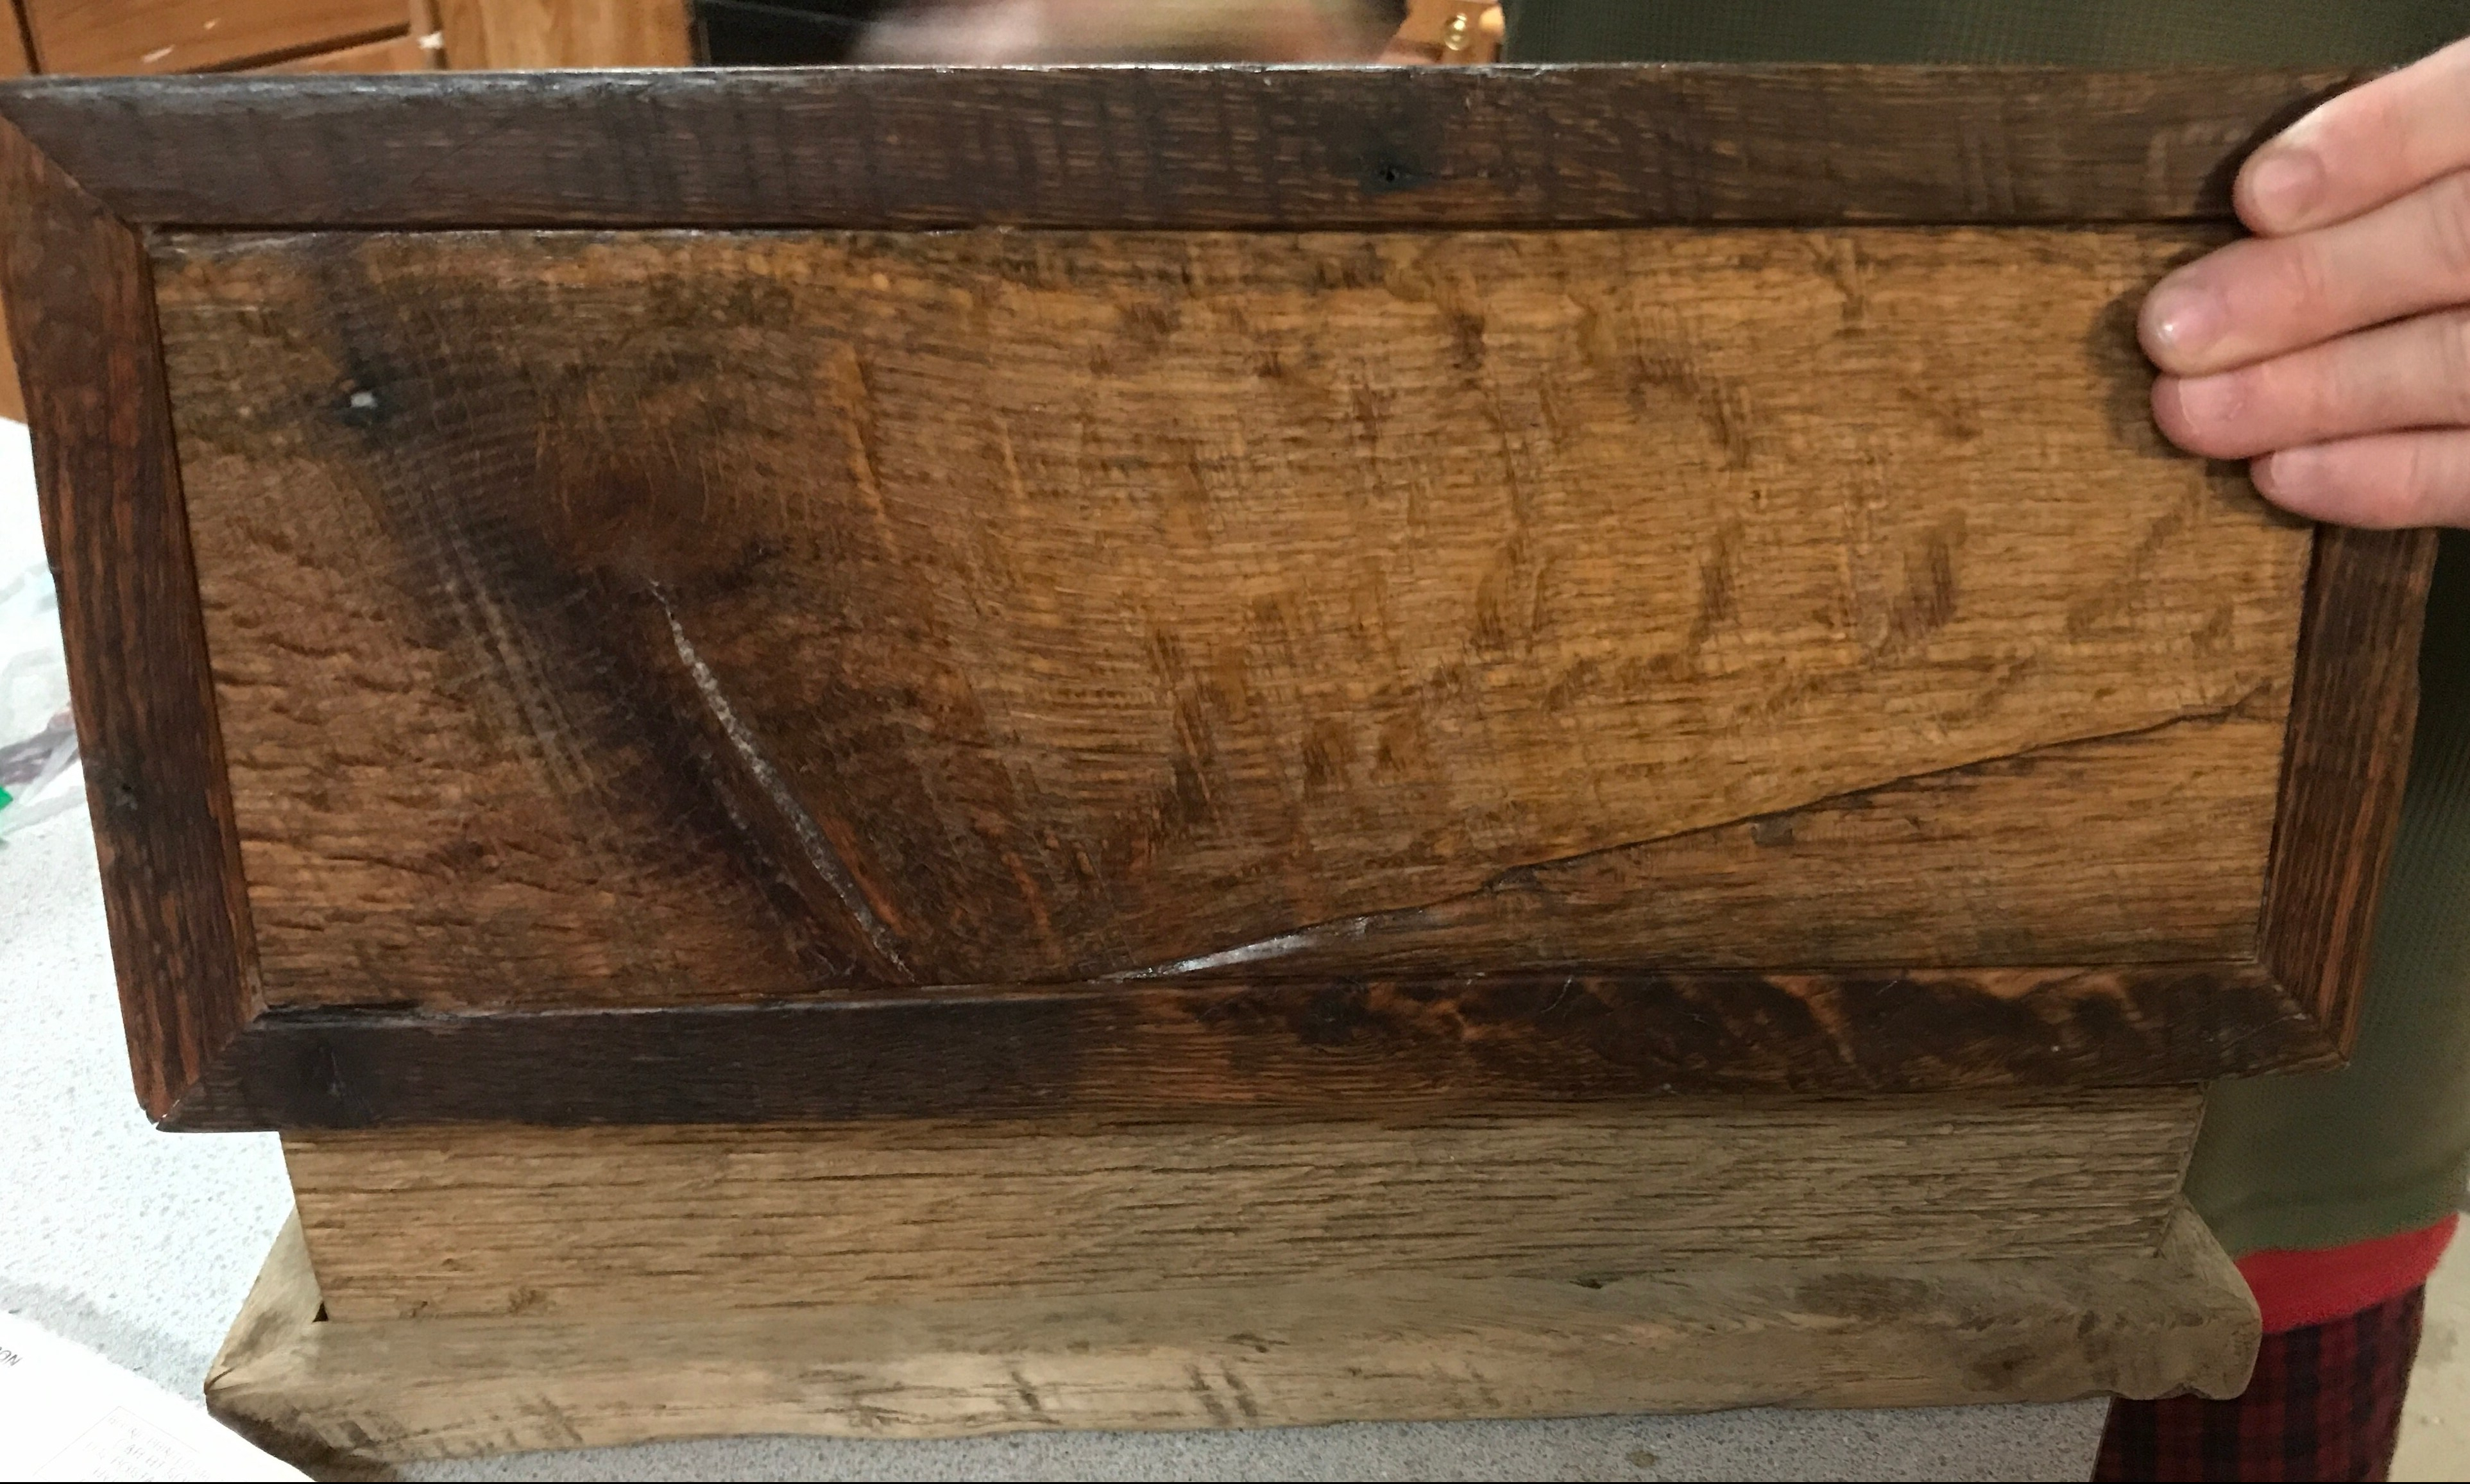 A solid oak wooden box with the top lifted up on its hinges, and the top has been oiled using home made wax with the bottom pox part not waxed